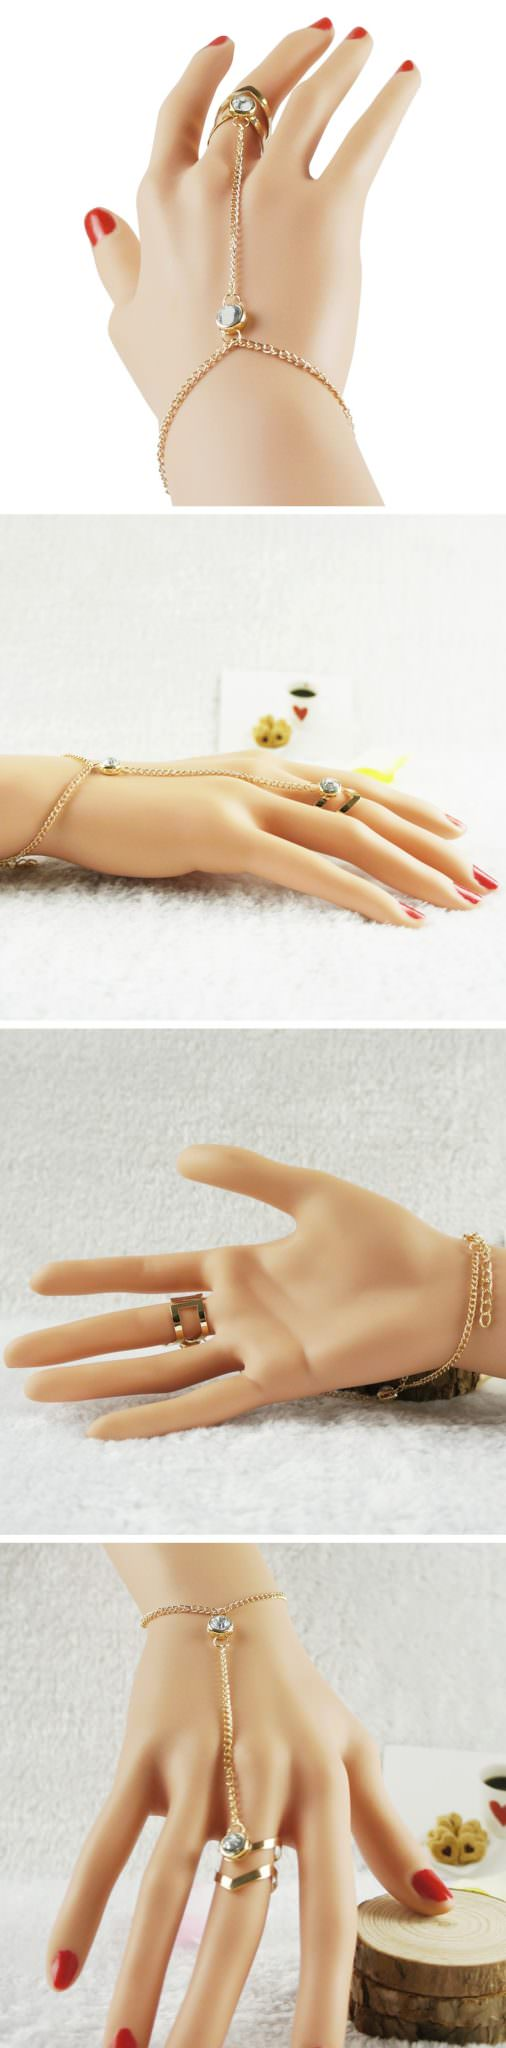 8871-8f6bab687a72790c46be02cb7bc62bca Gold Plated Double Ring Jewelry With Crystal And Slave Chain Bracelet